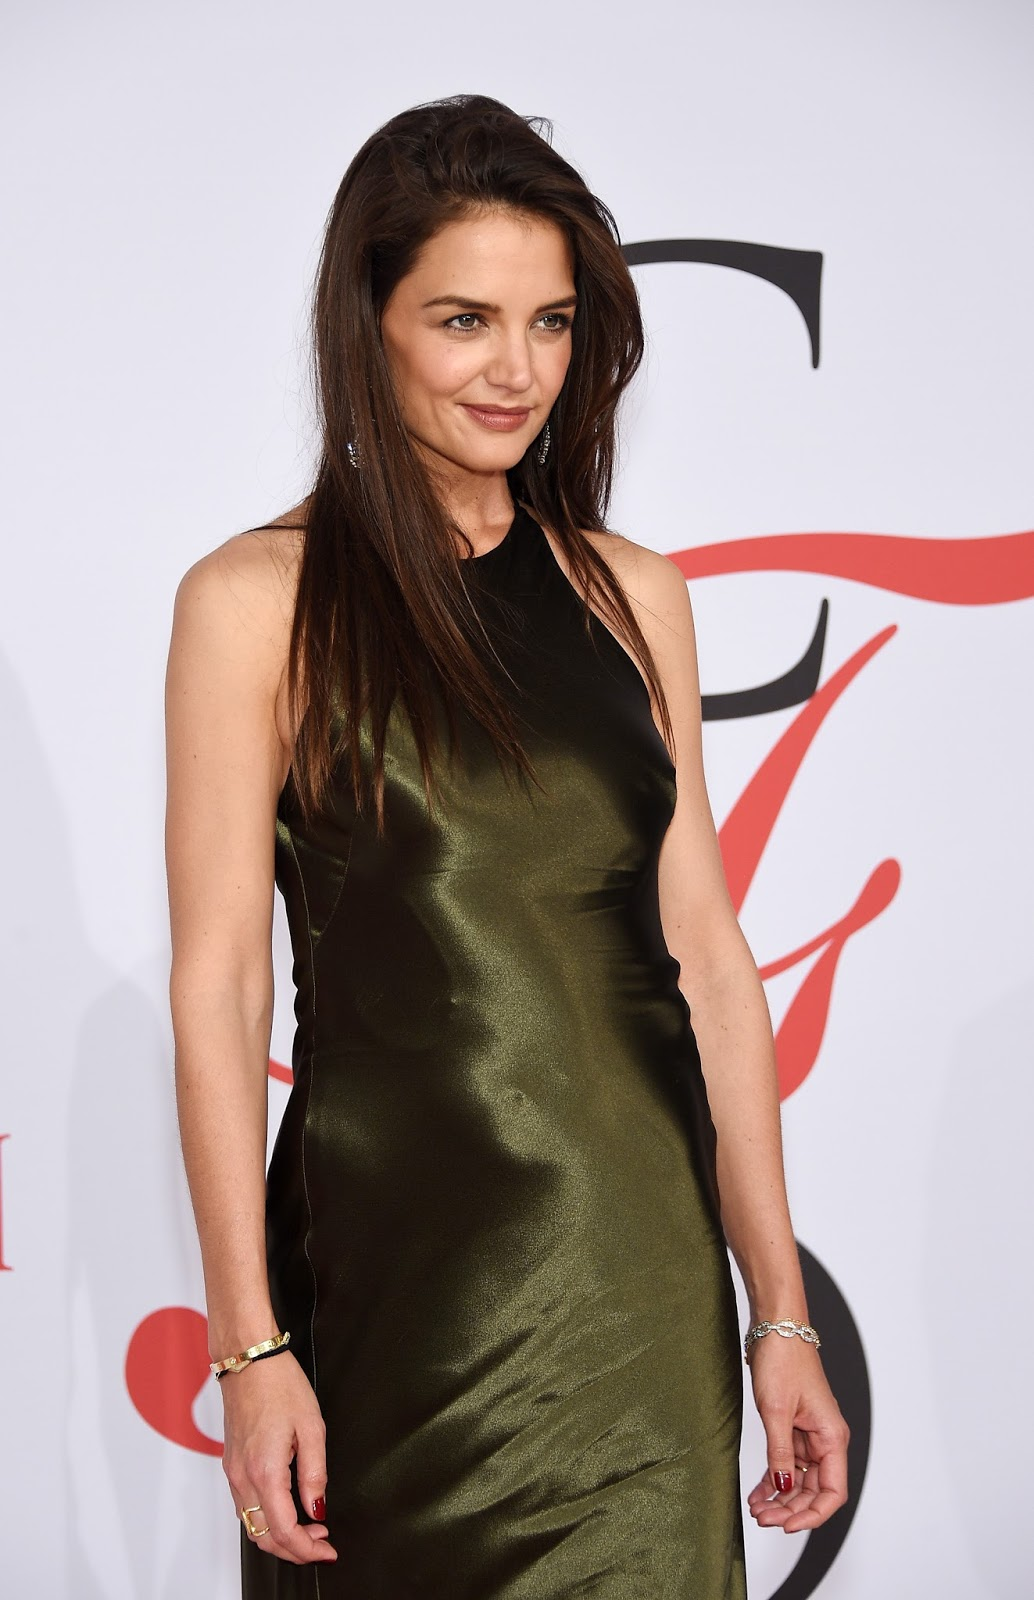 Katie Holmes - brown satin dress